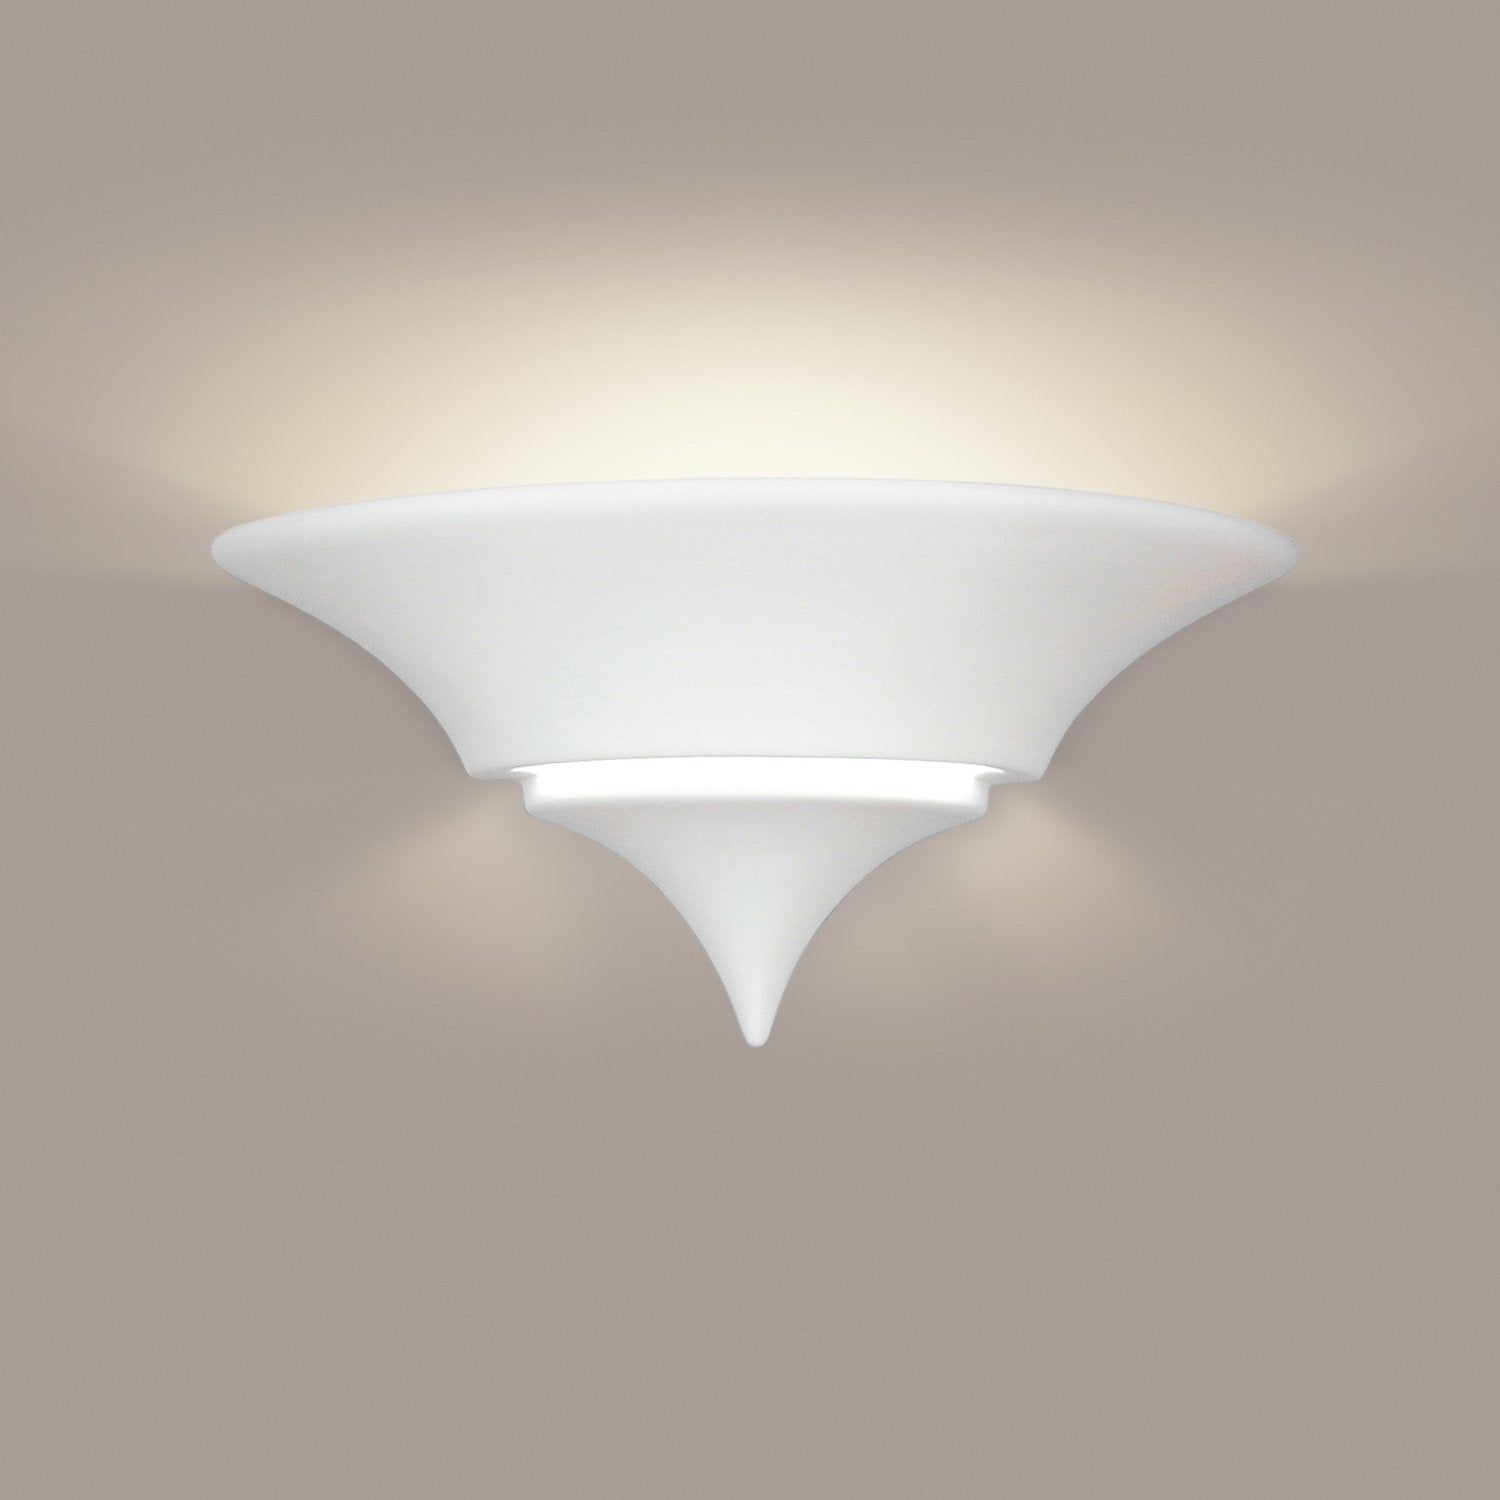 A19 401-A20 Islands of Light Collection Atlantis Spanish Olive Finish Wall Sconce